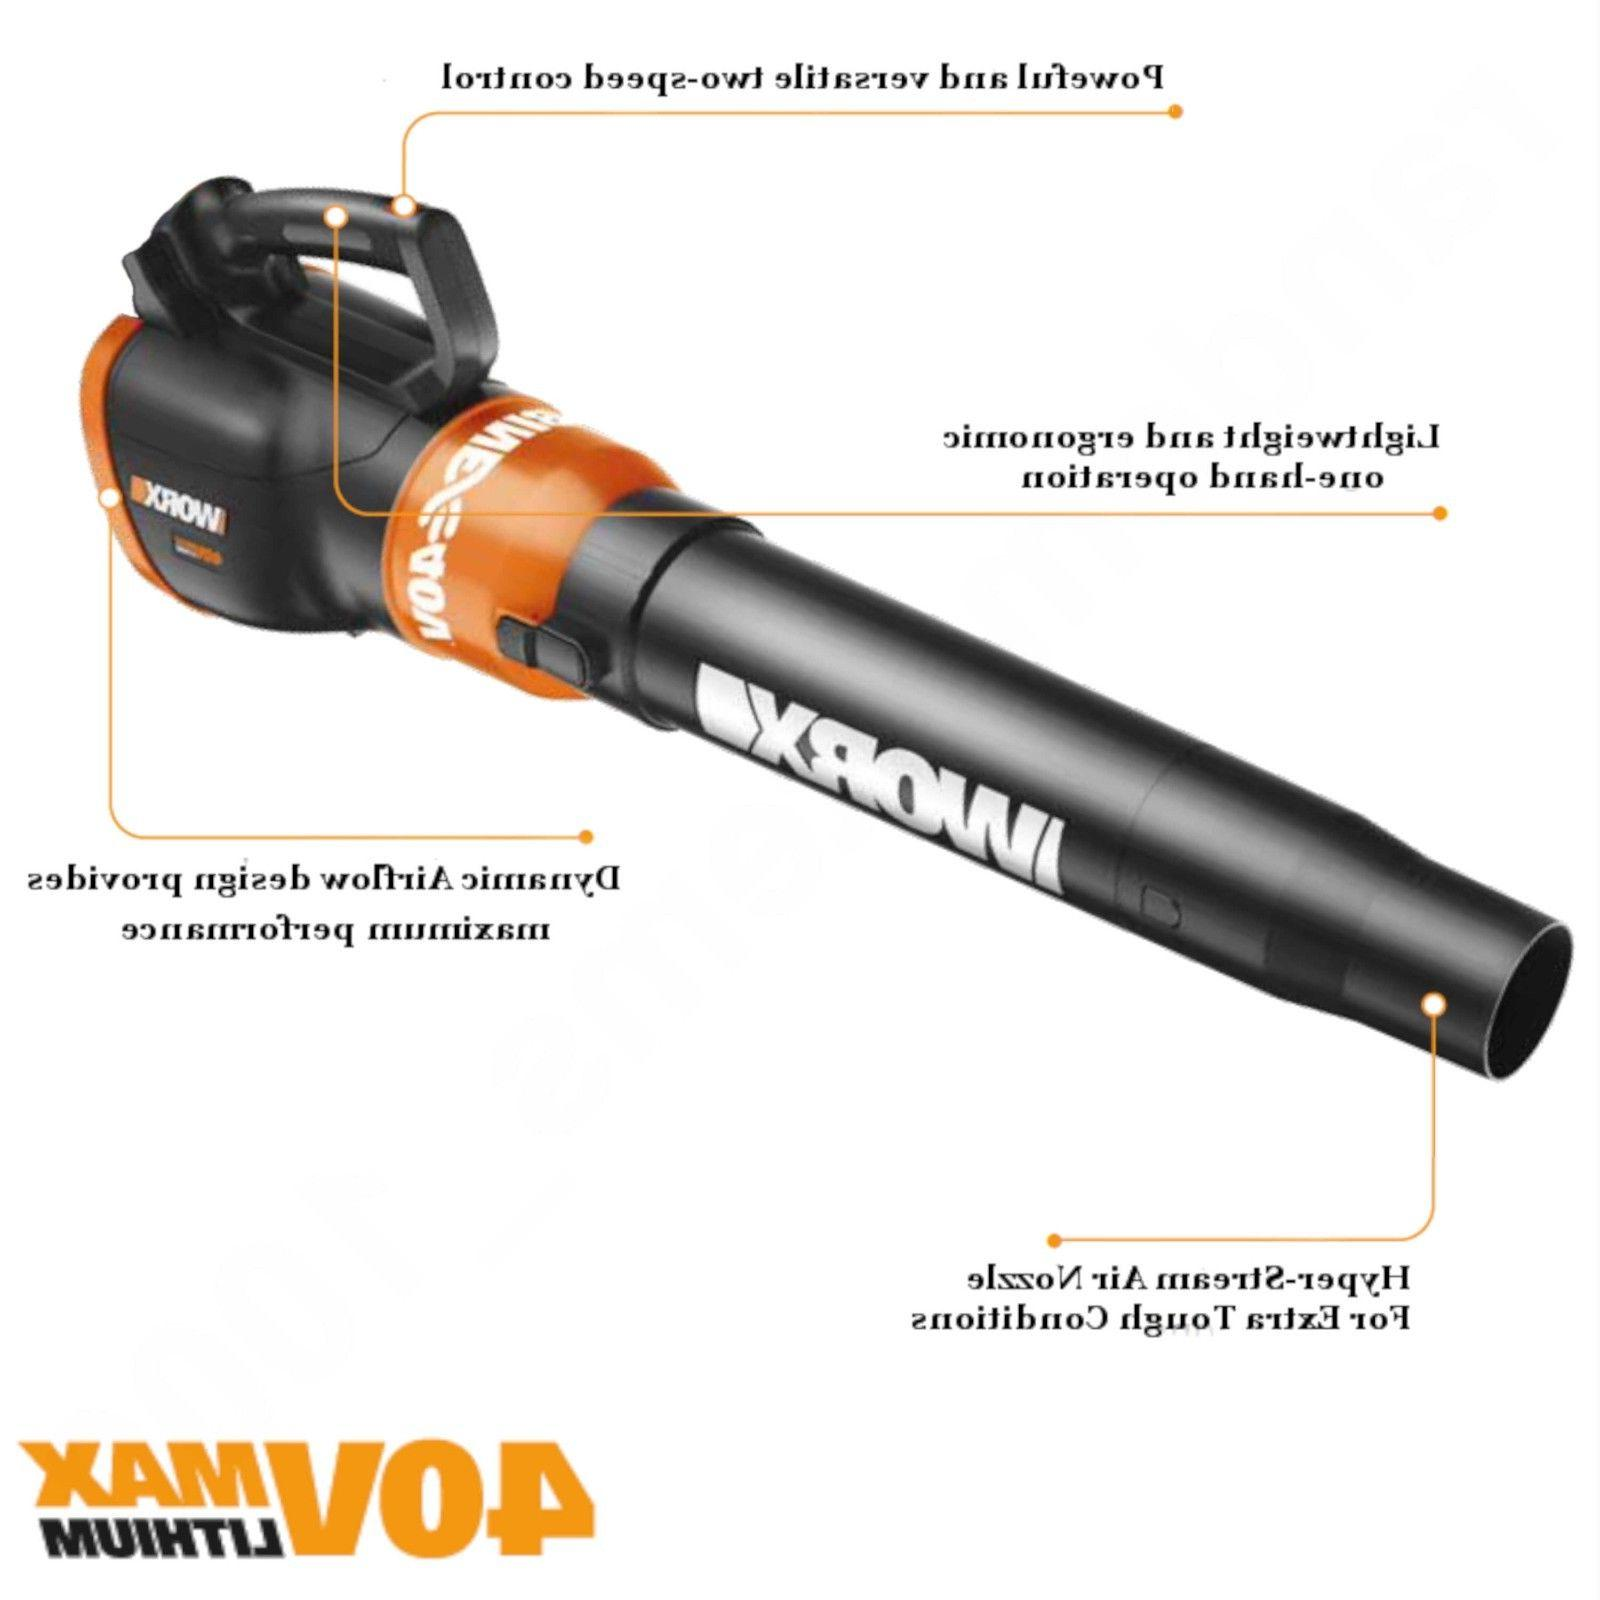 WORX Leaf Blower - TOOL NO CHARGER